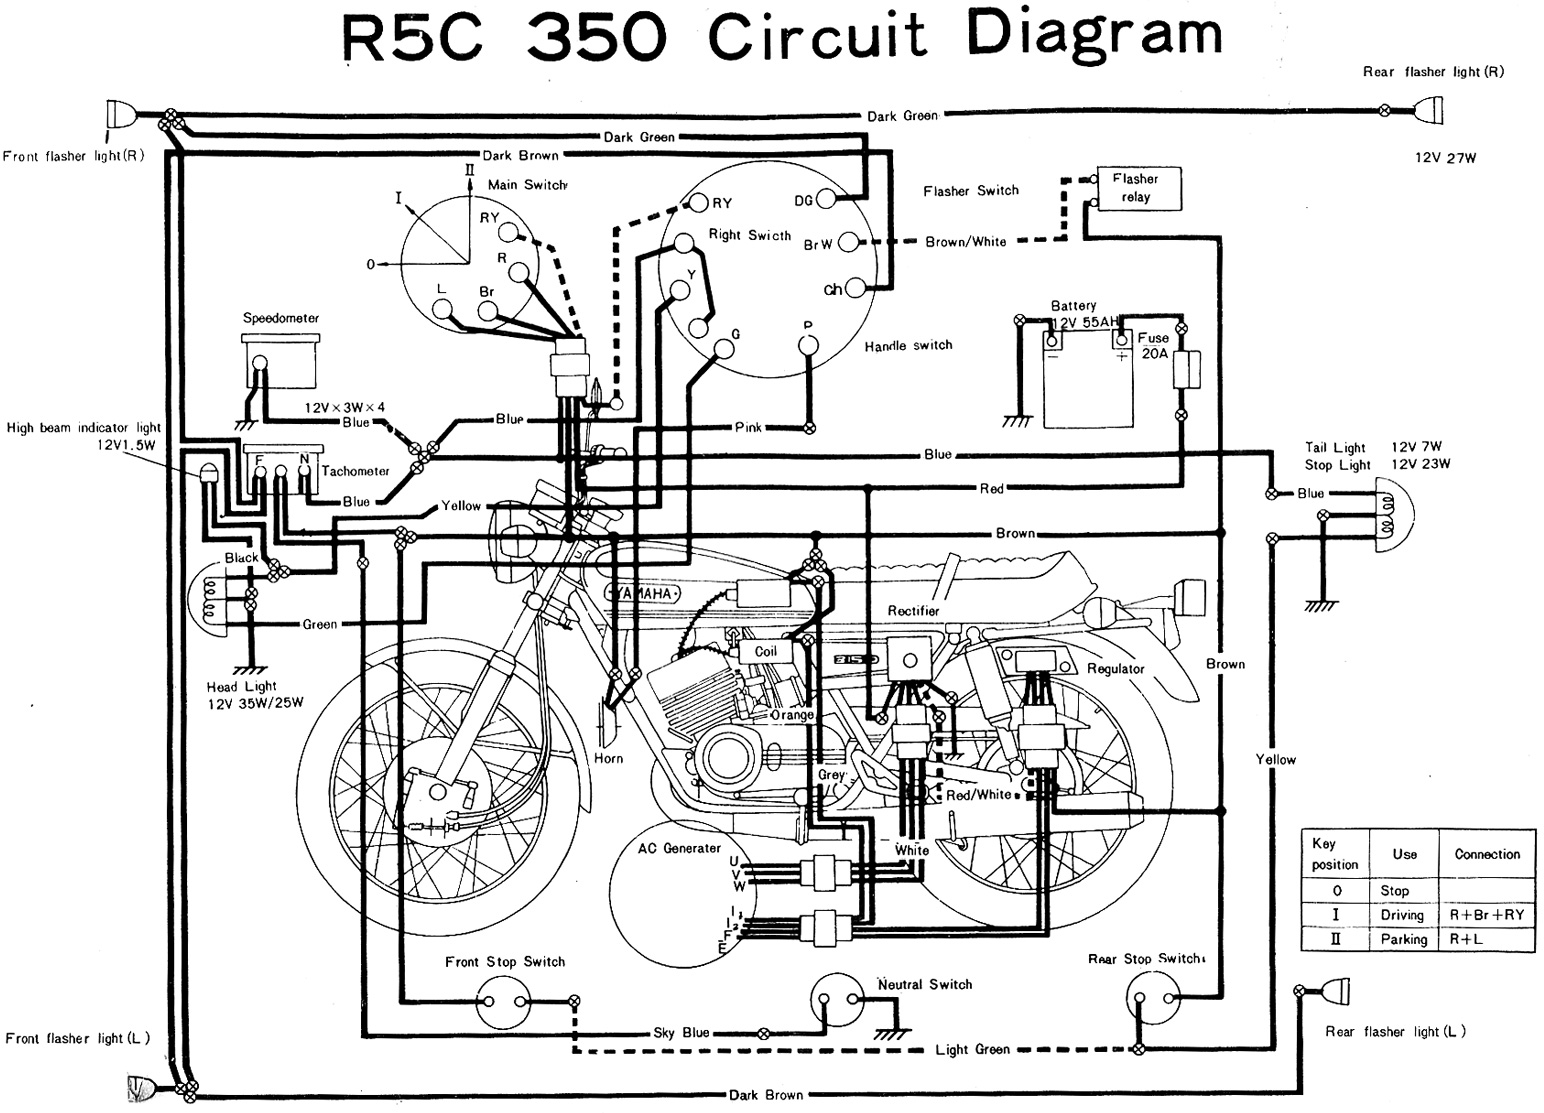 Yamaha RD350 R5C Wiring Diagram yamaha rd350 r5c wiring diagram evan fell motorcycle worksevan simple motorcycle wiring diagram at gsmx.co